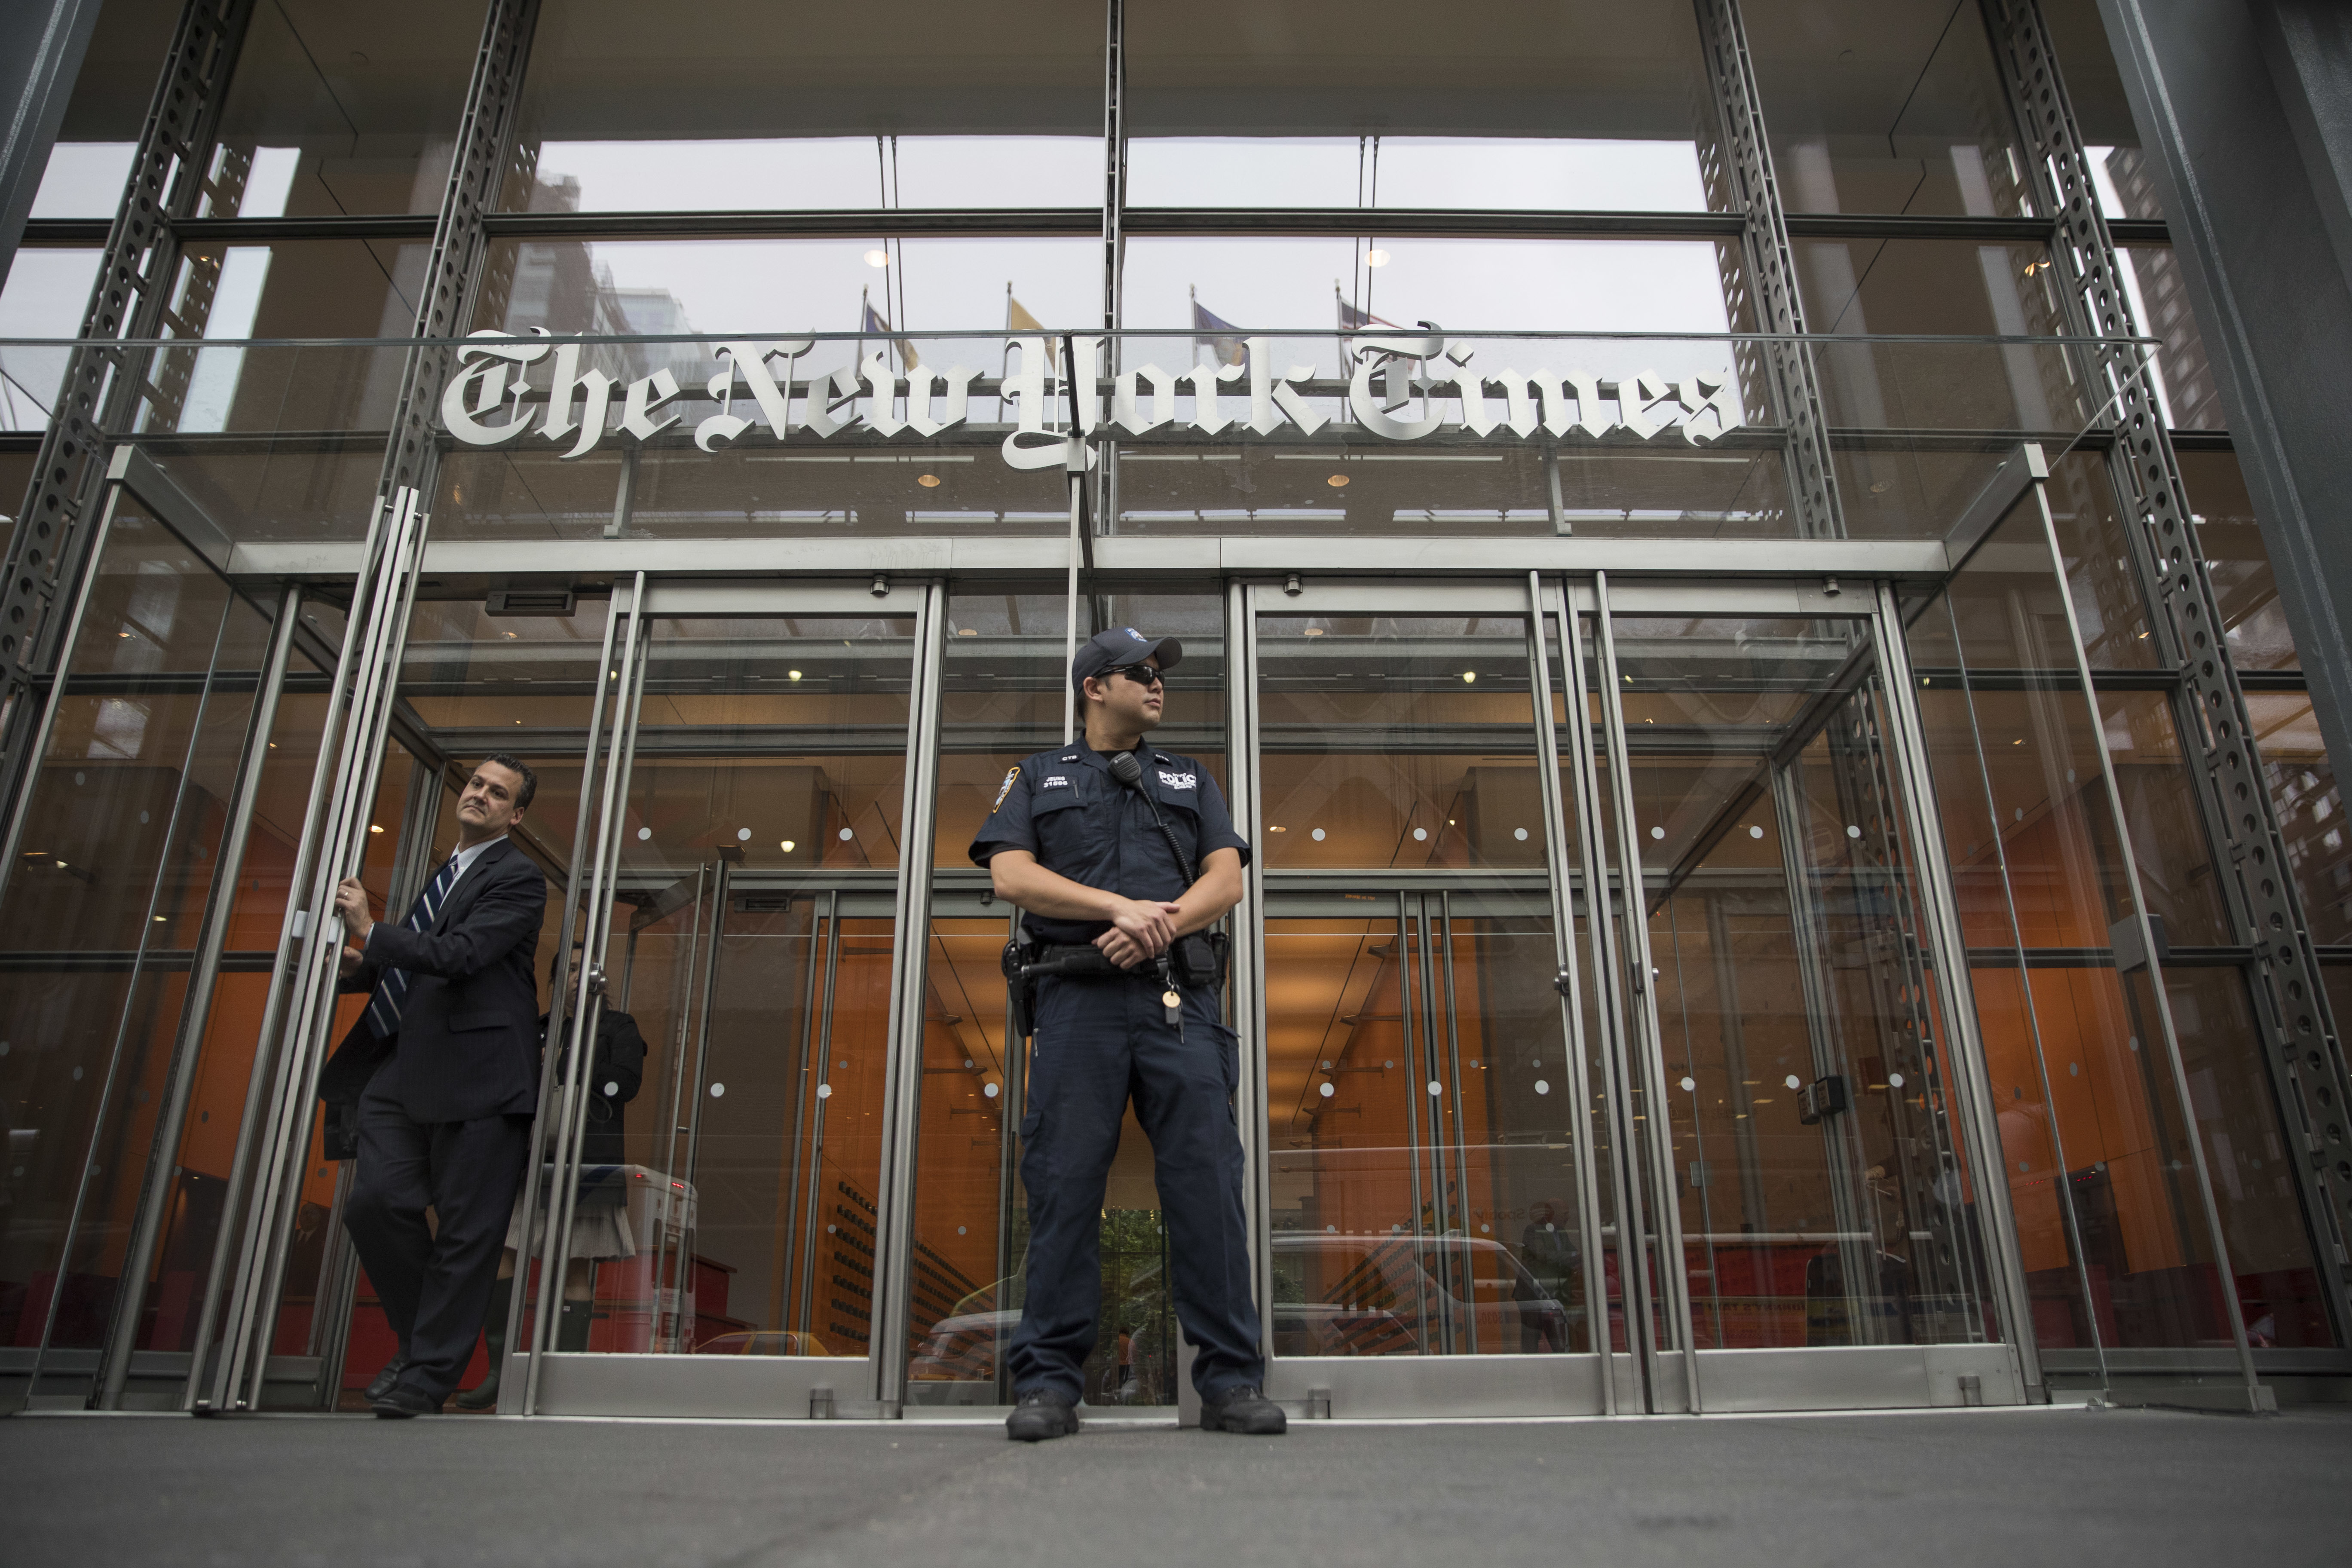 A police officer stands outside The New York Times building in New York, on June 28, 2018.